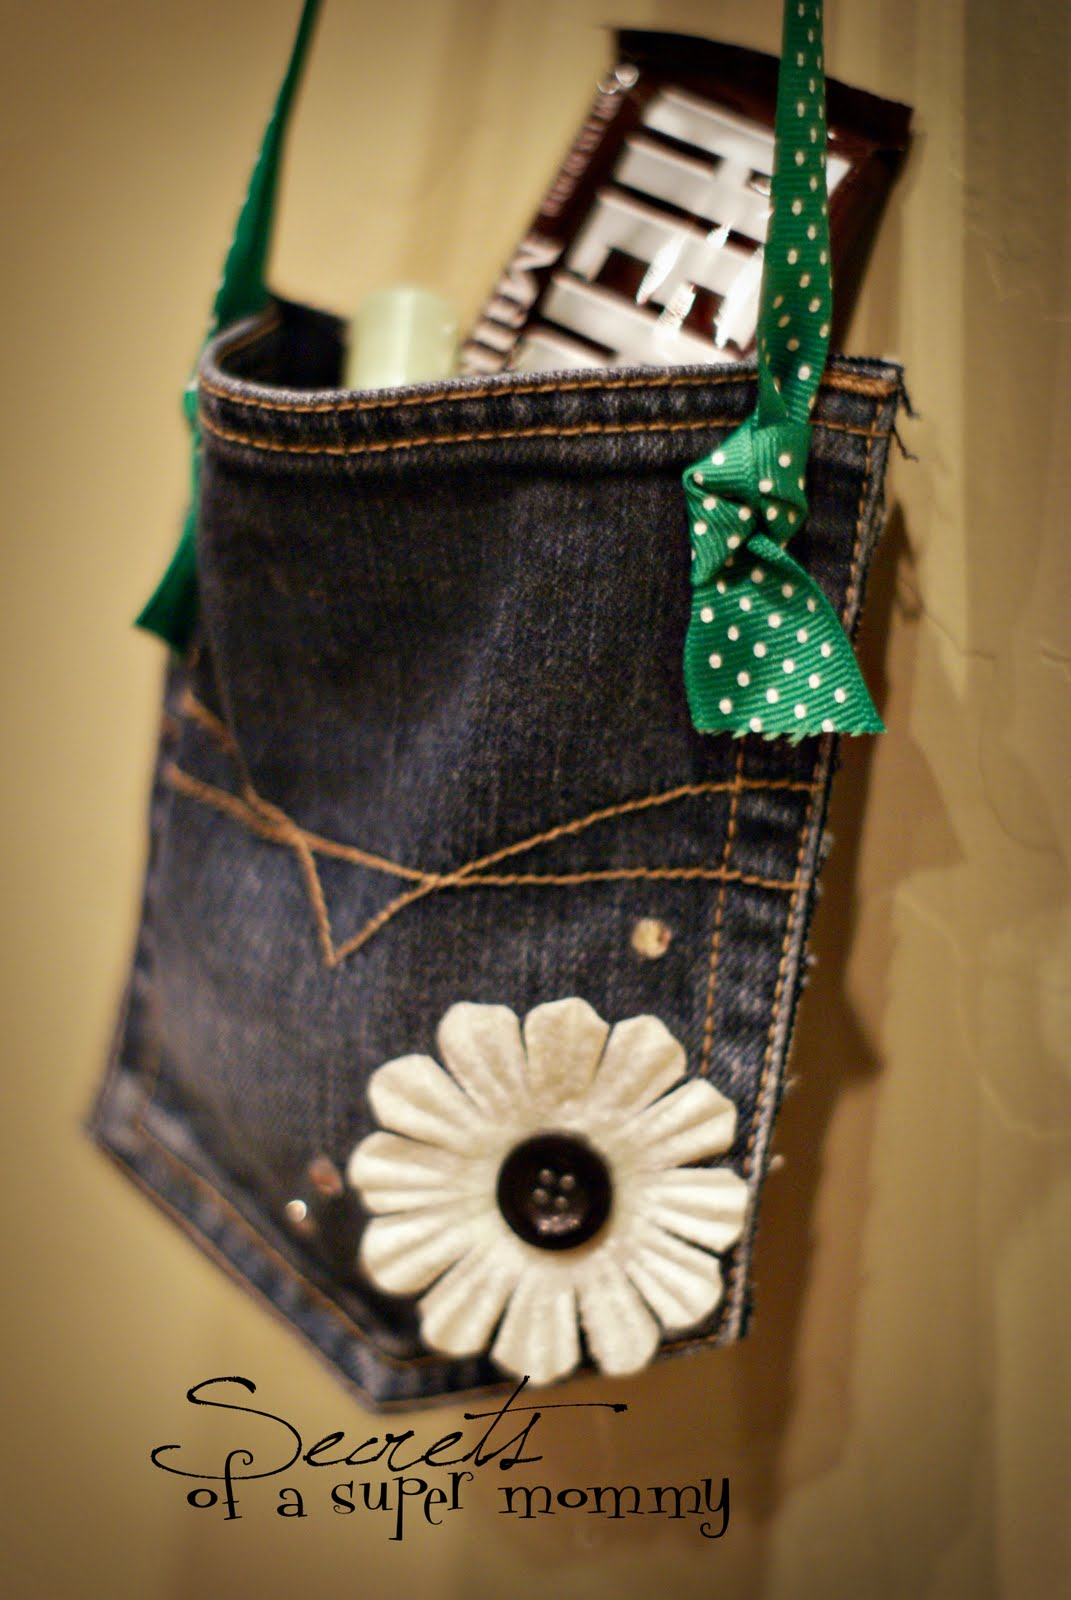 Secrets of a Super Mommy: Four Fun Ways to Reuse Old Jeans!